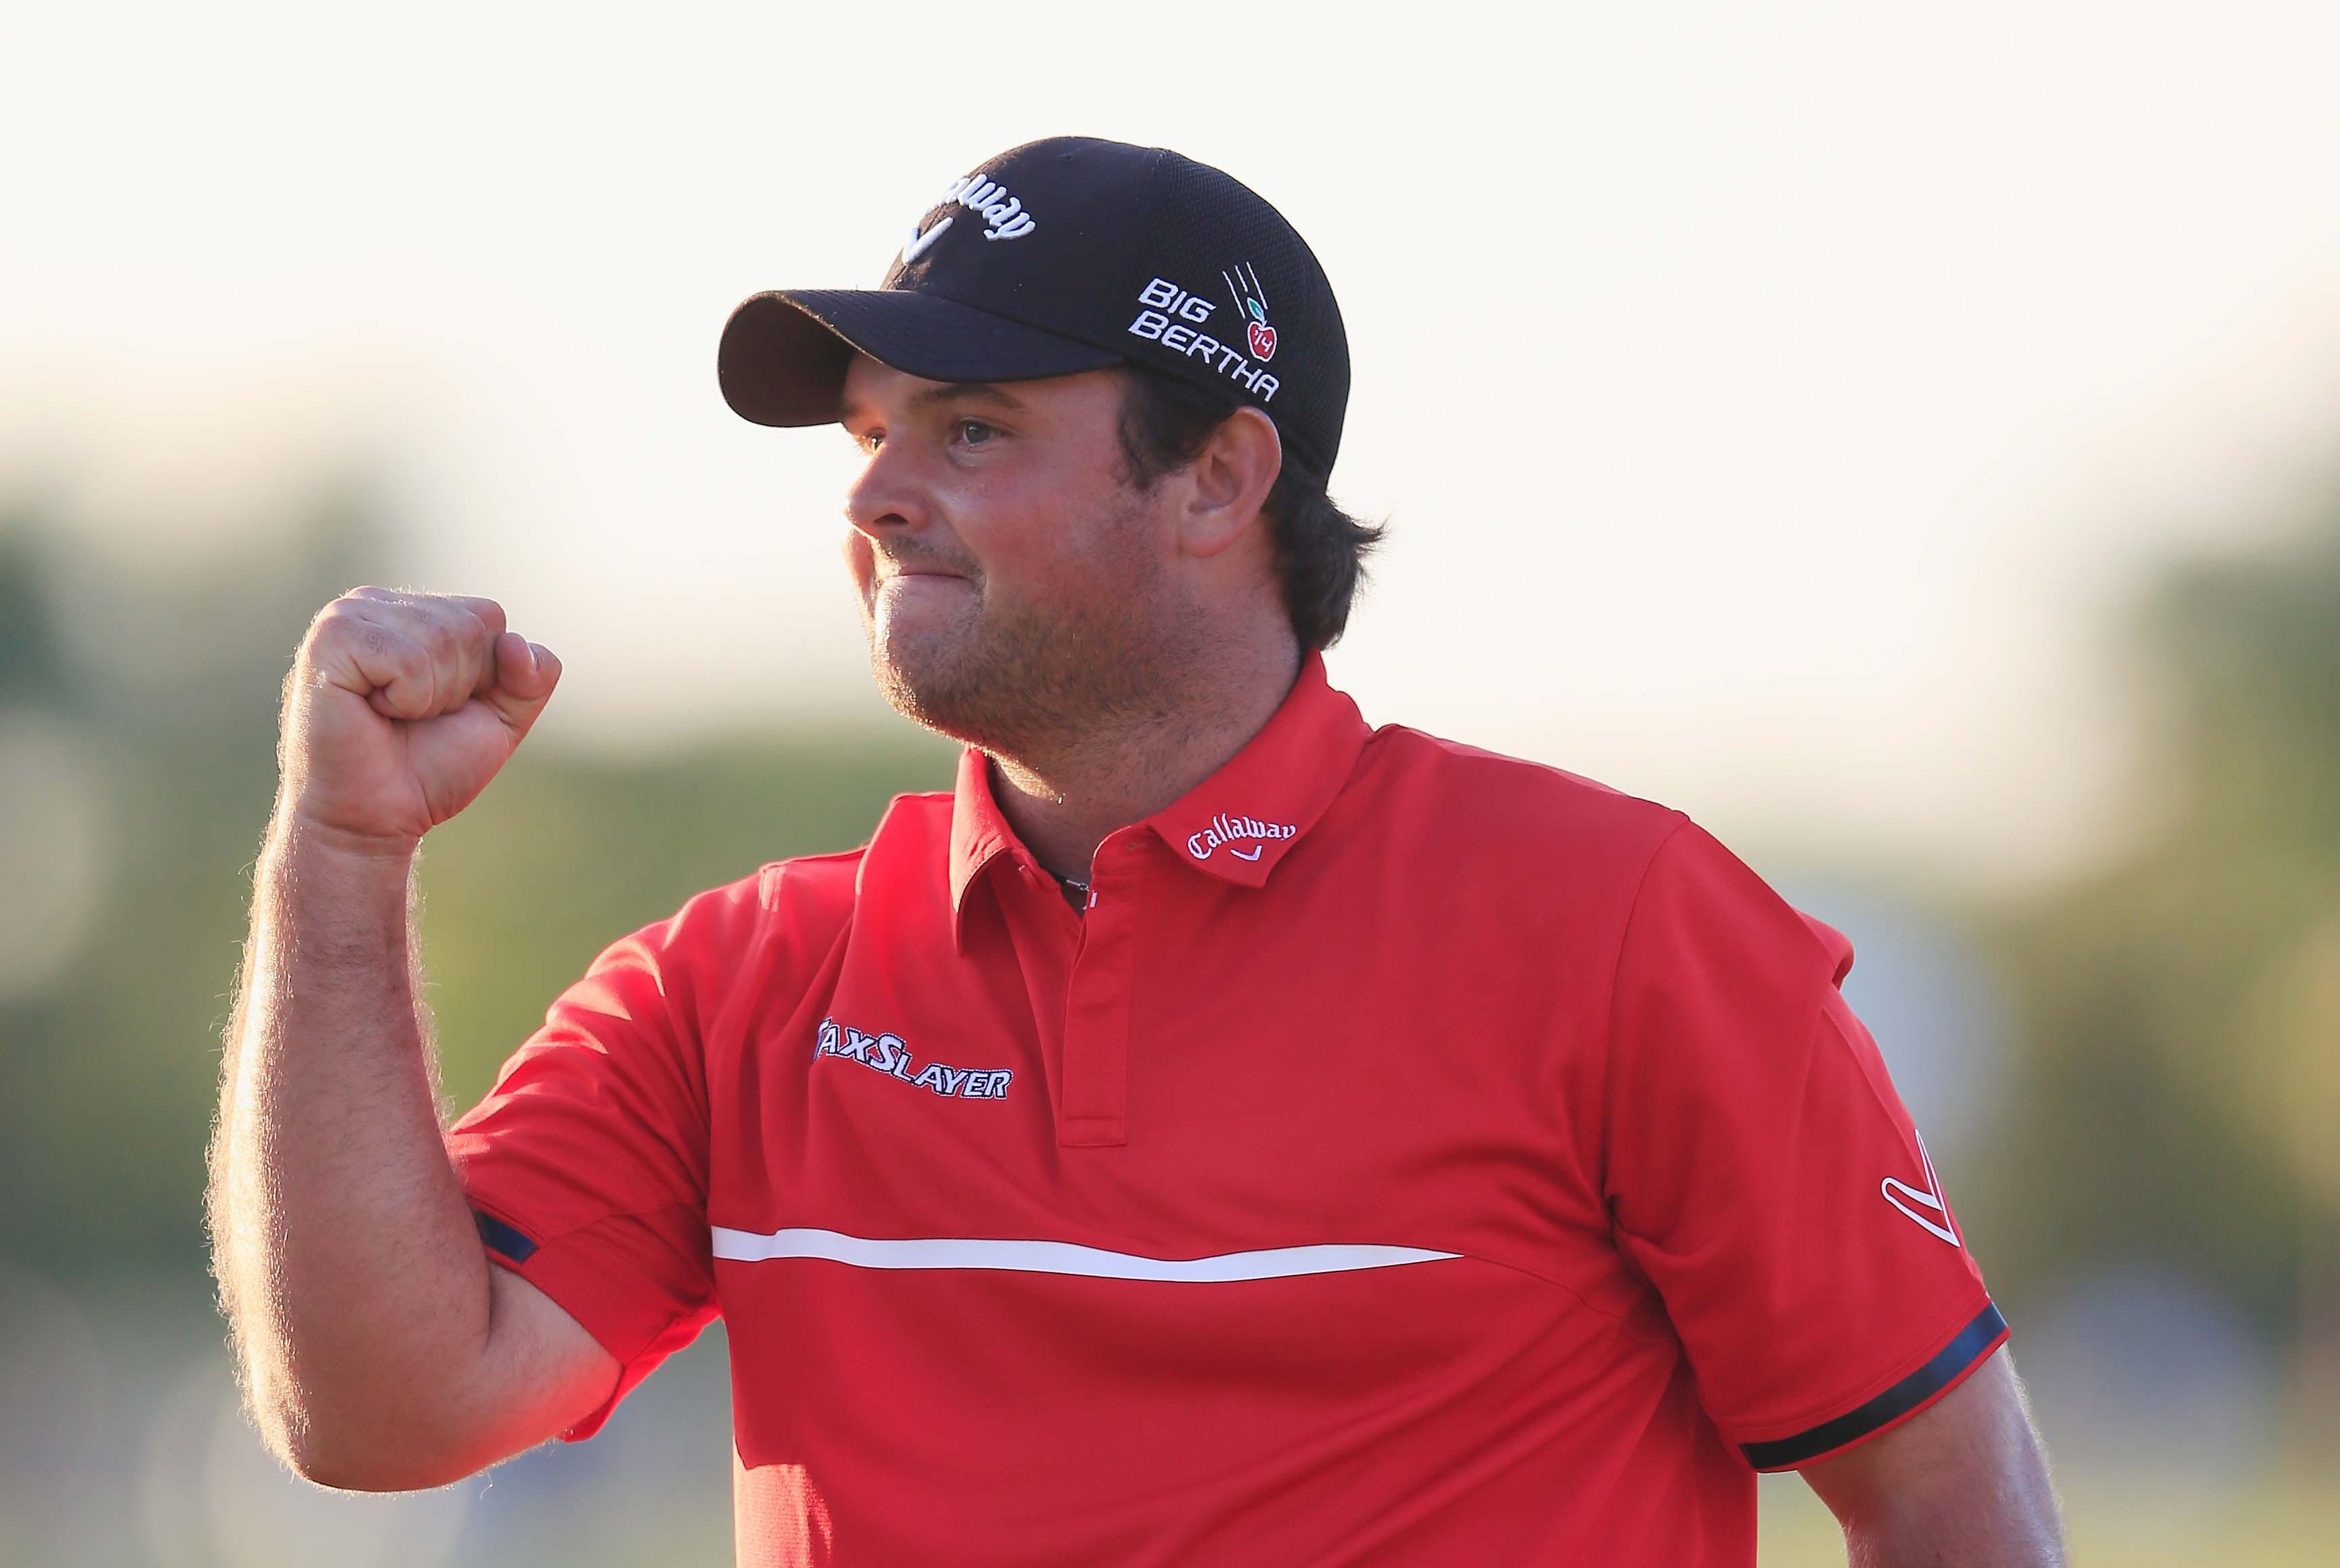 Patrick Reed calling himself a 'top-5 player' after win at Doral